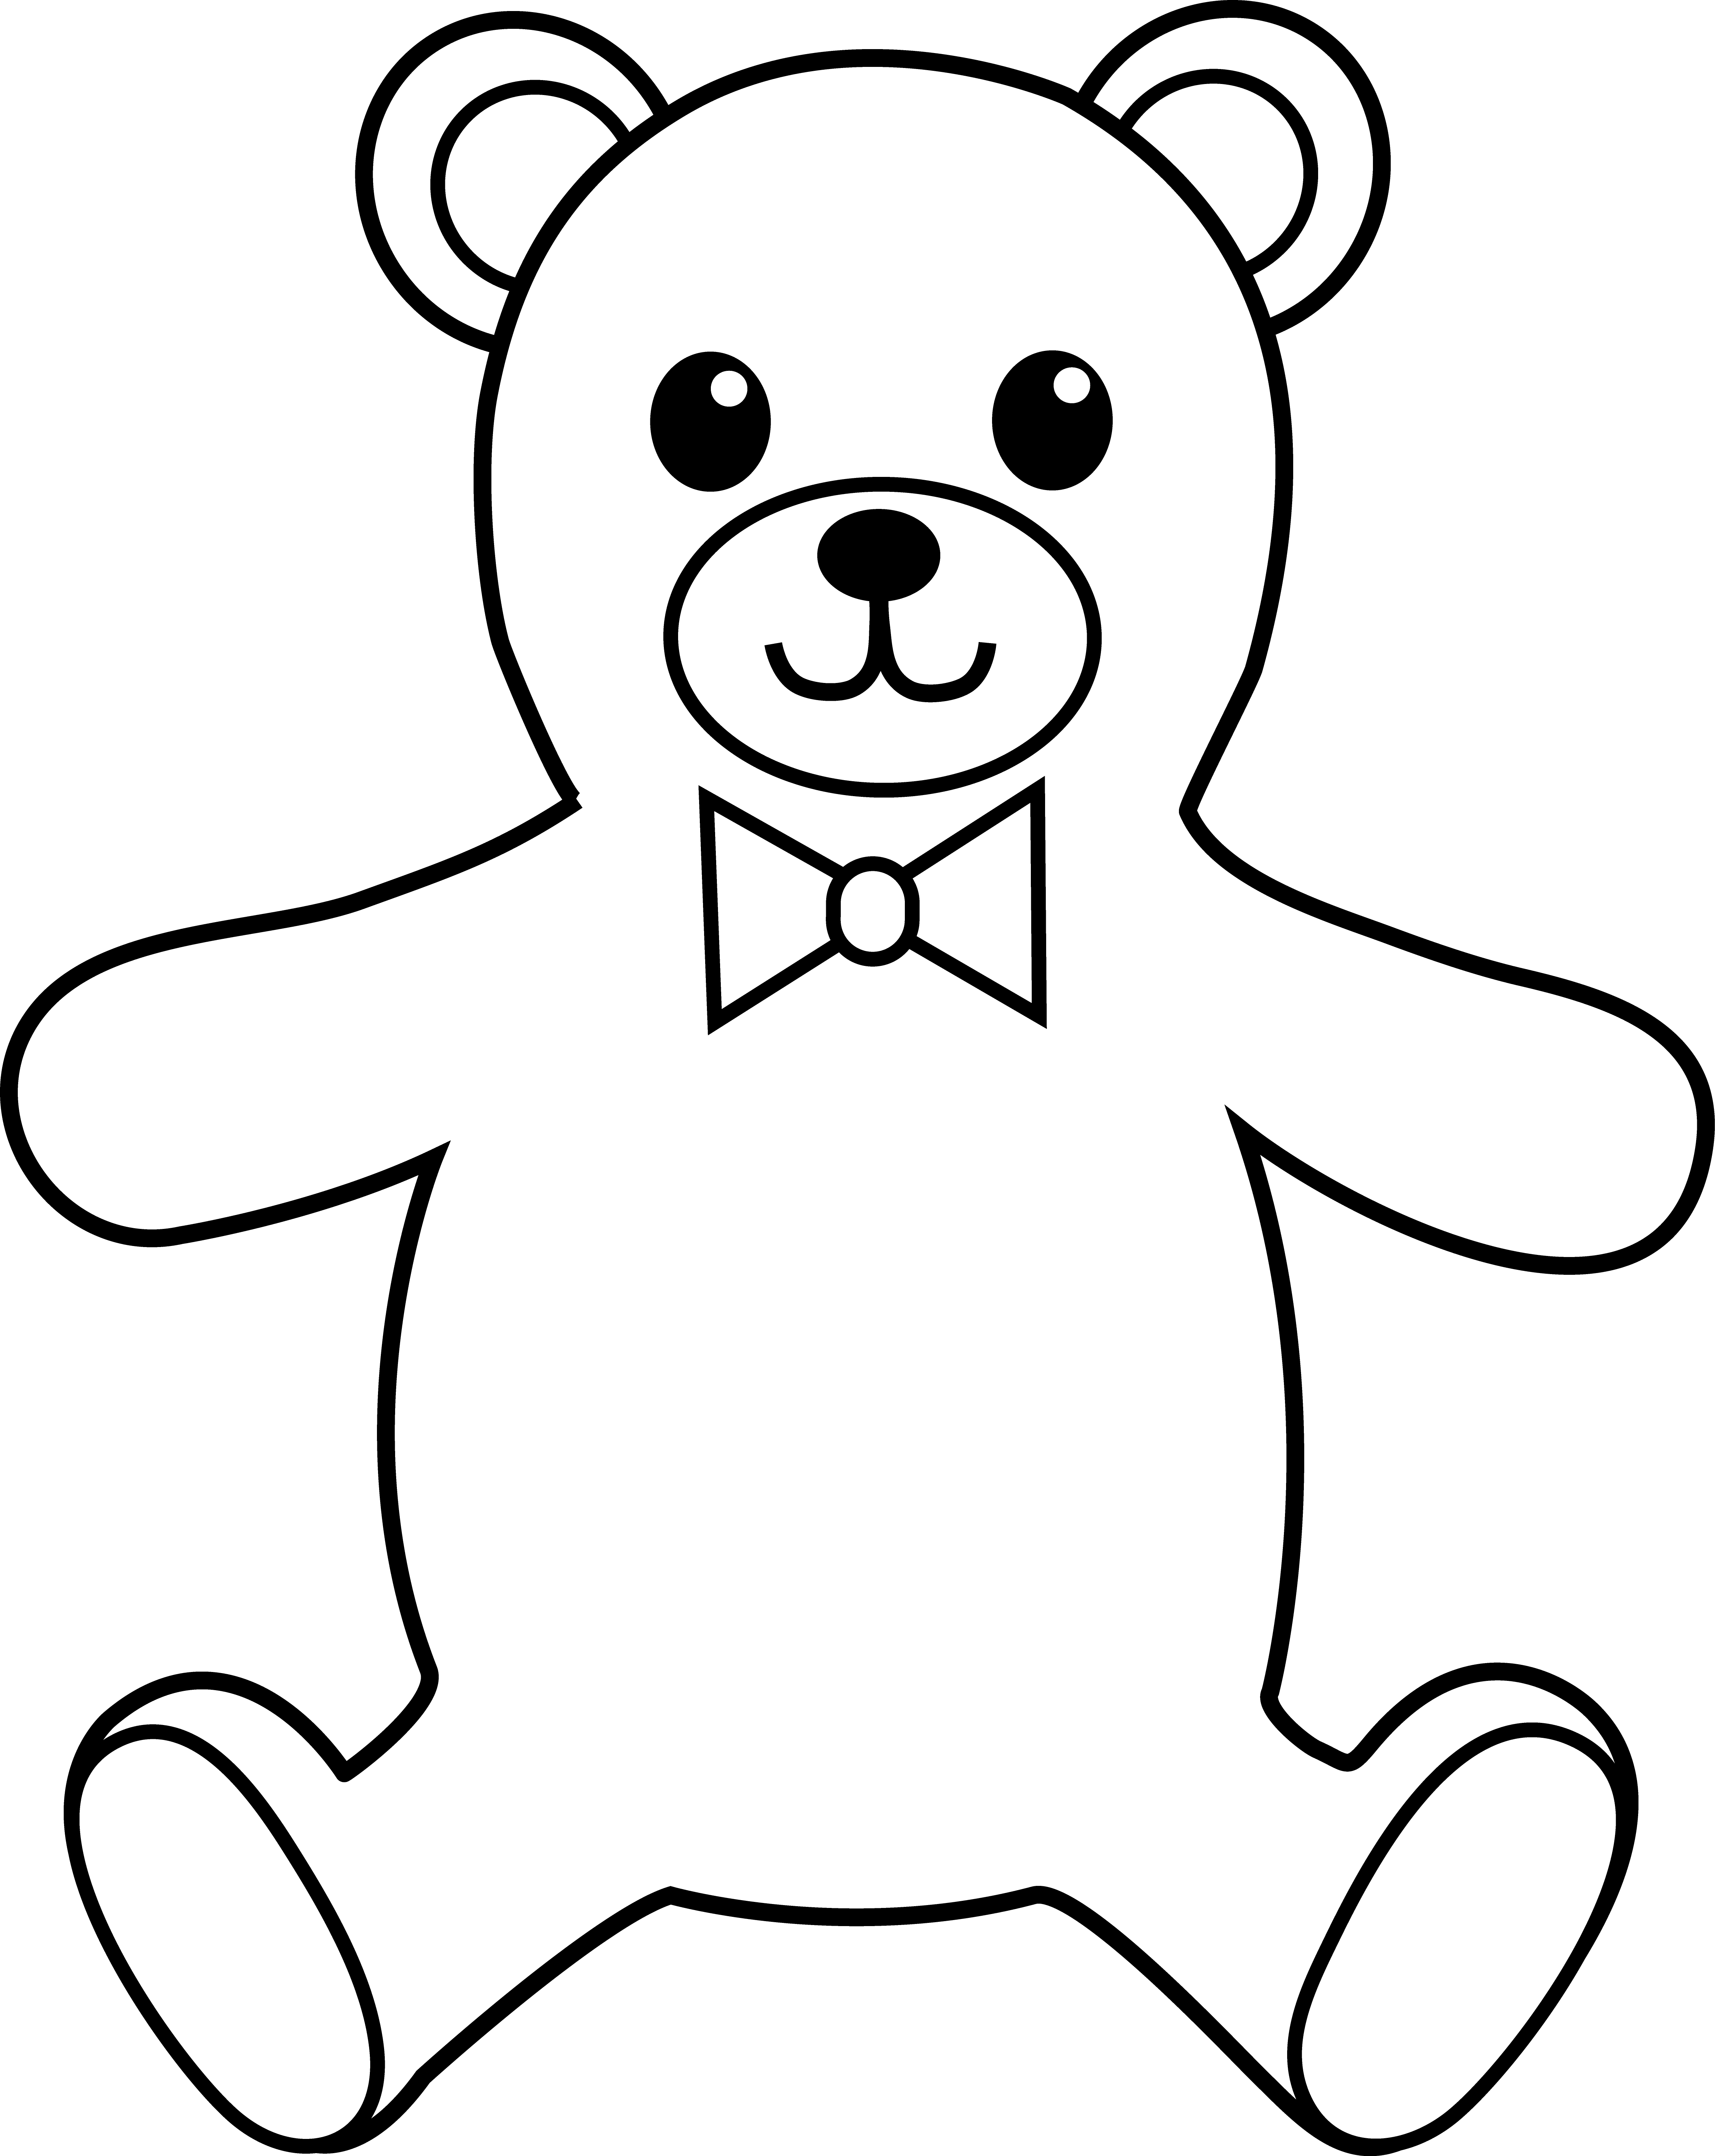 Teddy bear outline template - crazywidow.info